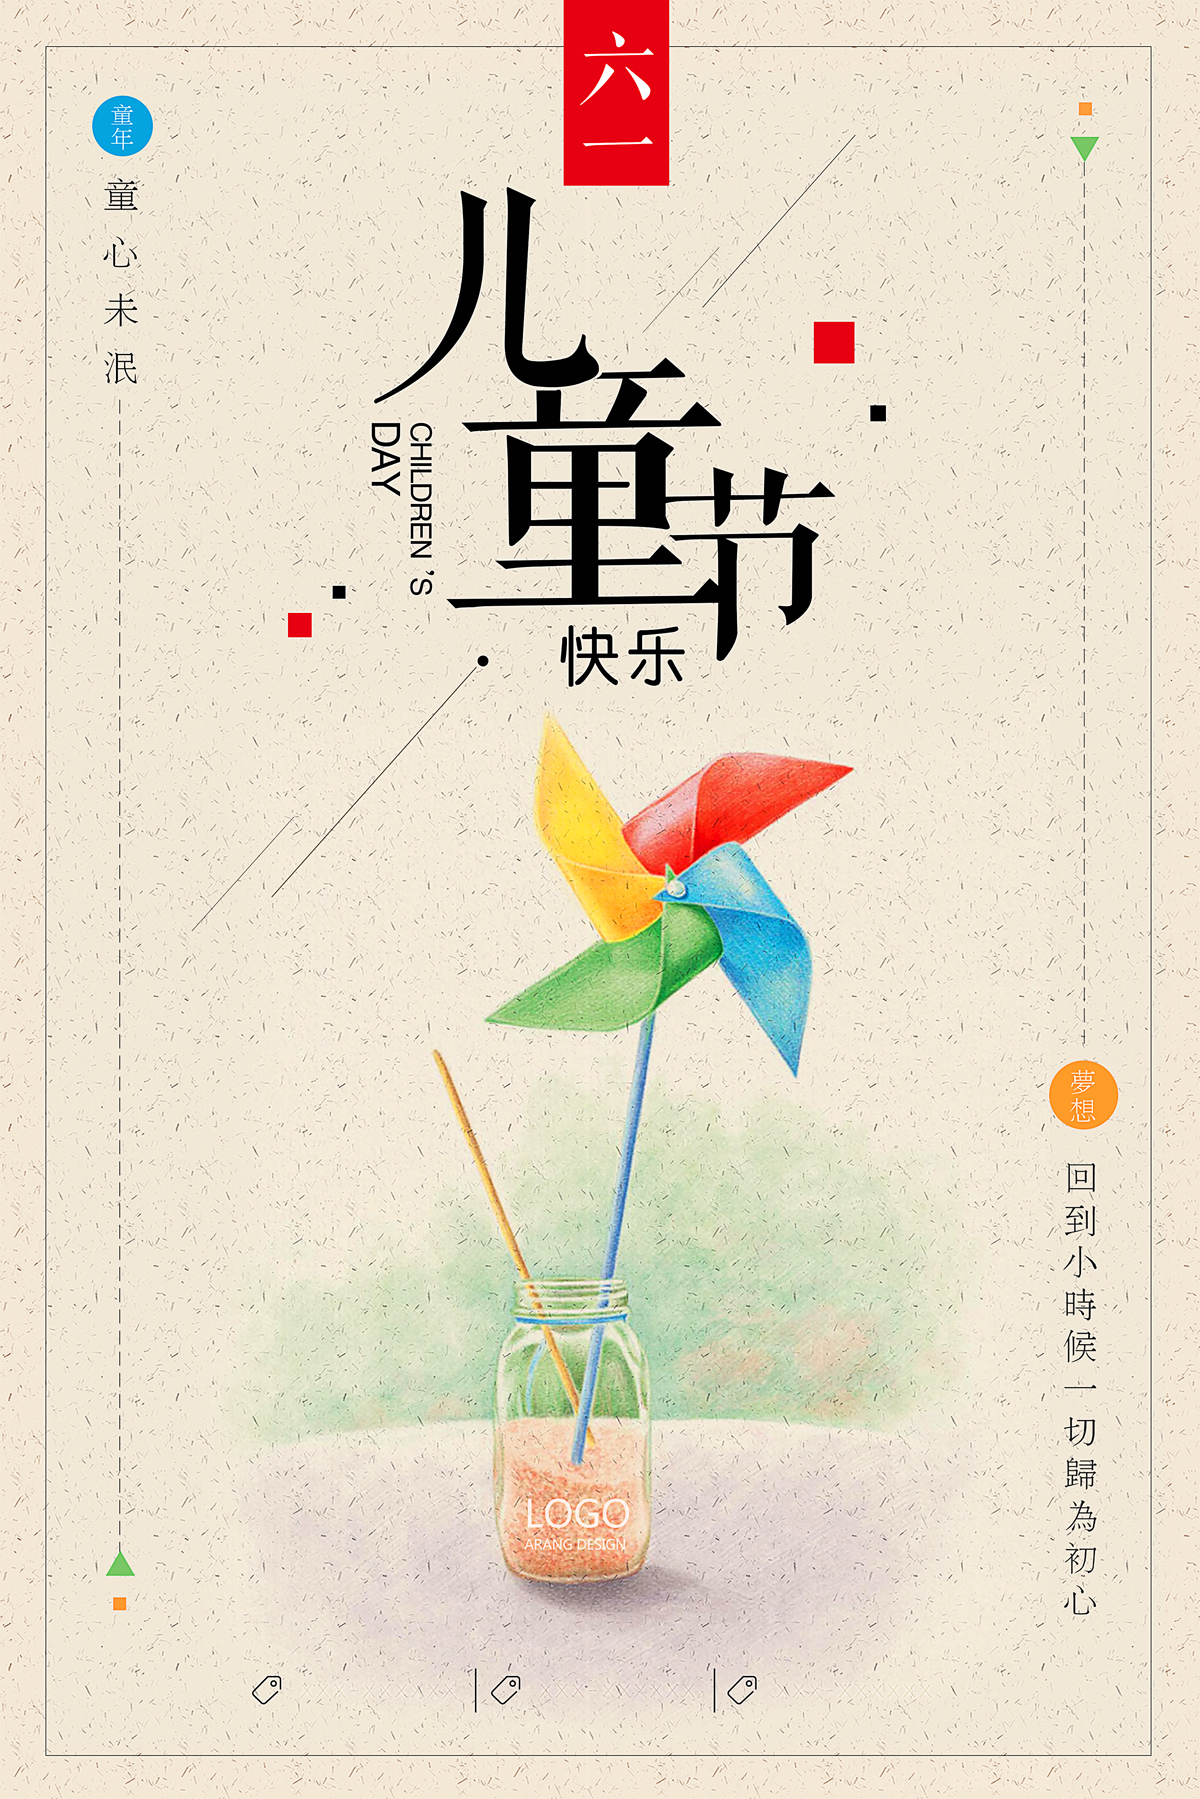 chinesefontdesign.com 2017 06 03 07 53 29 702855 June 1 International Childrens Day Celebration Poster China PSD File Free Download shading background retro innocence glass bottles color watercolor windmill illustrations childrens day happy Childrens Day fresh and creative posters PSD layered material black art fonts beautiful back to childhood all classified as early